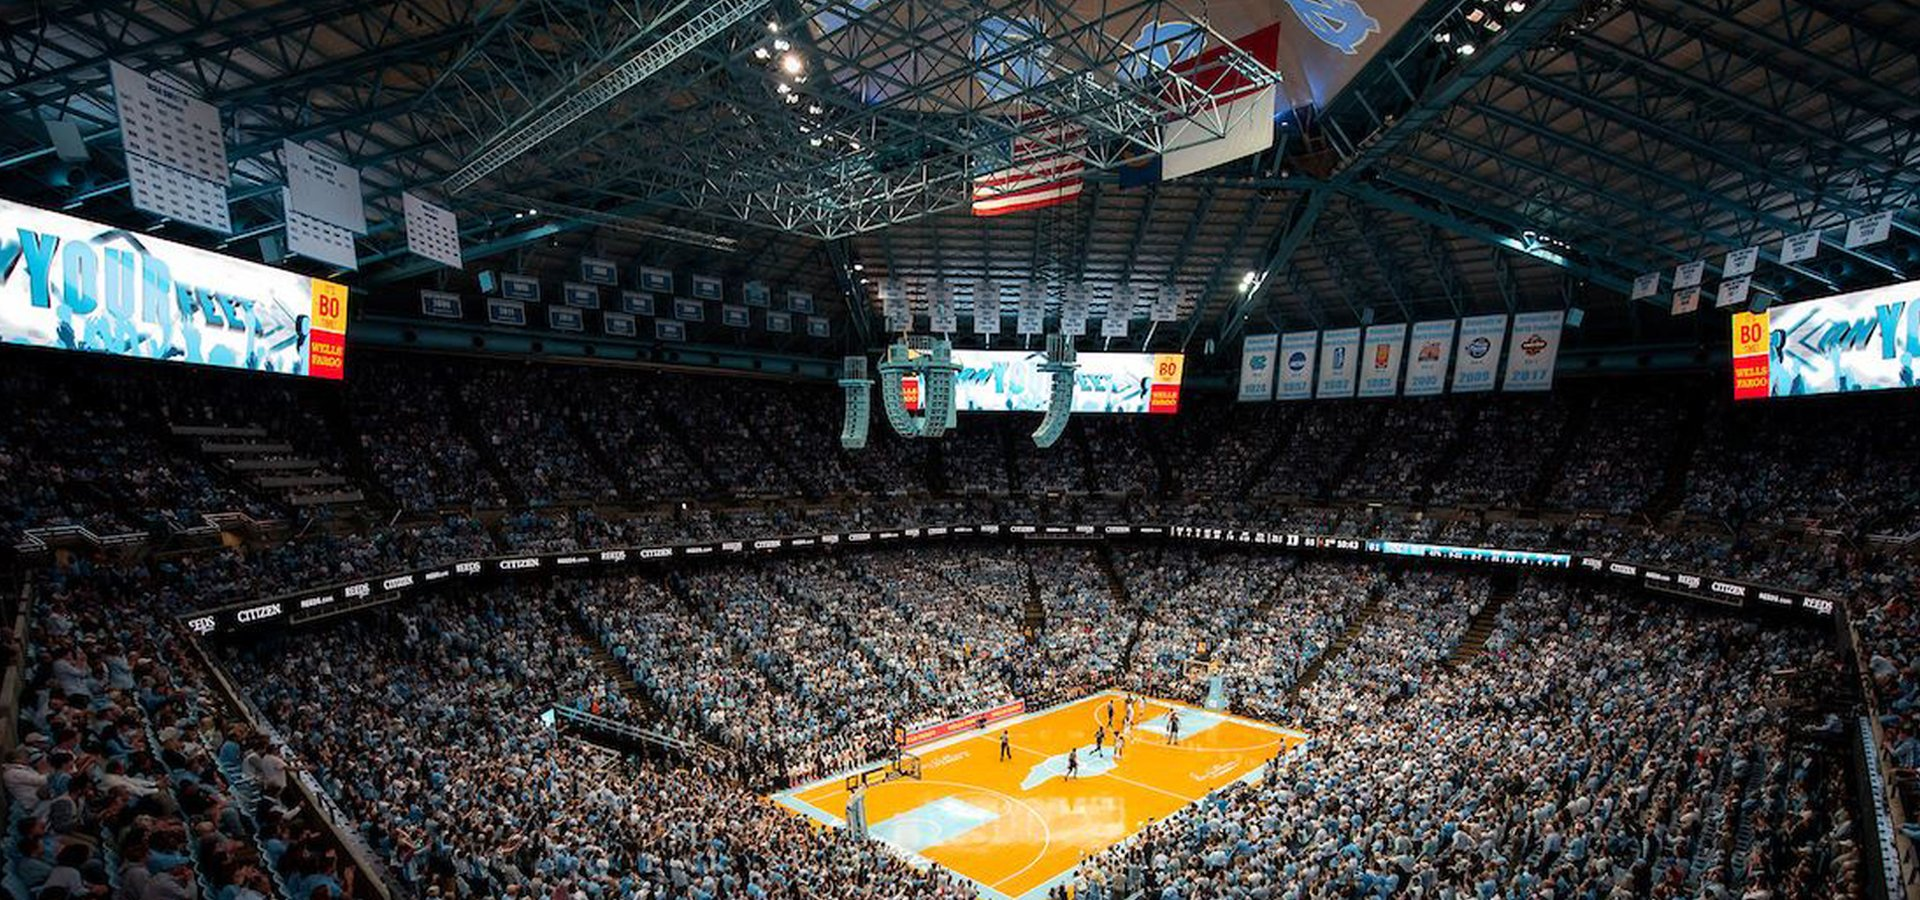 UNC basketball arena